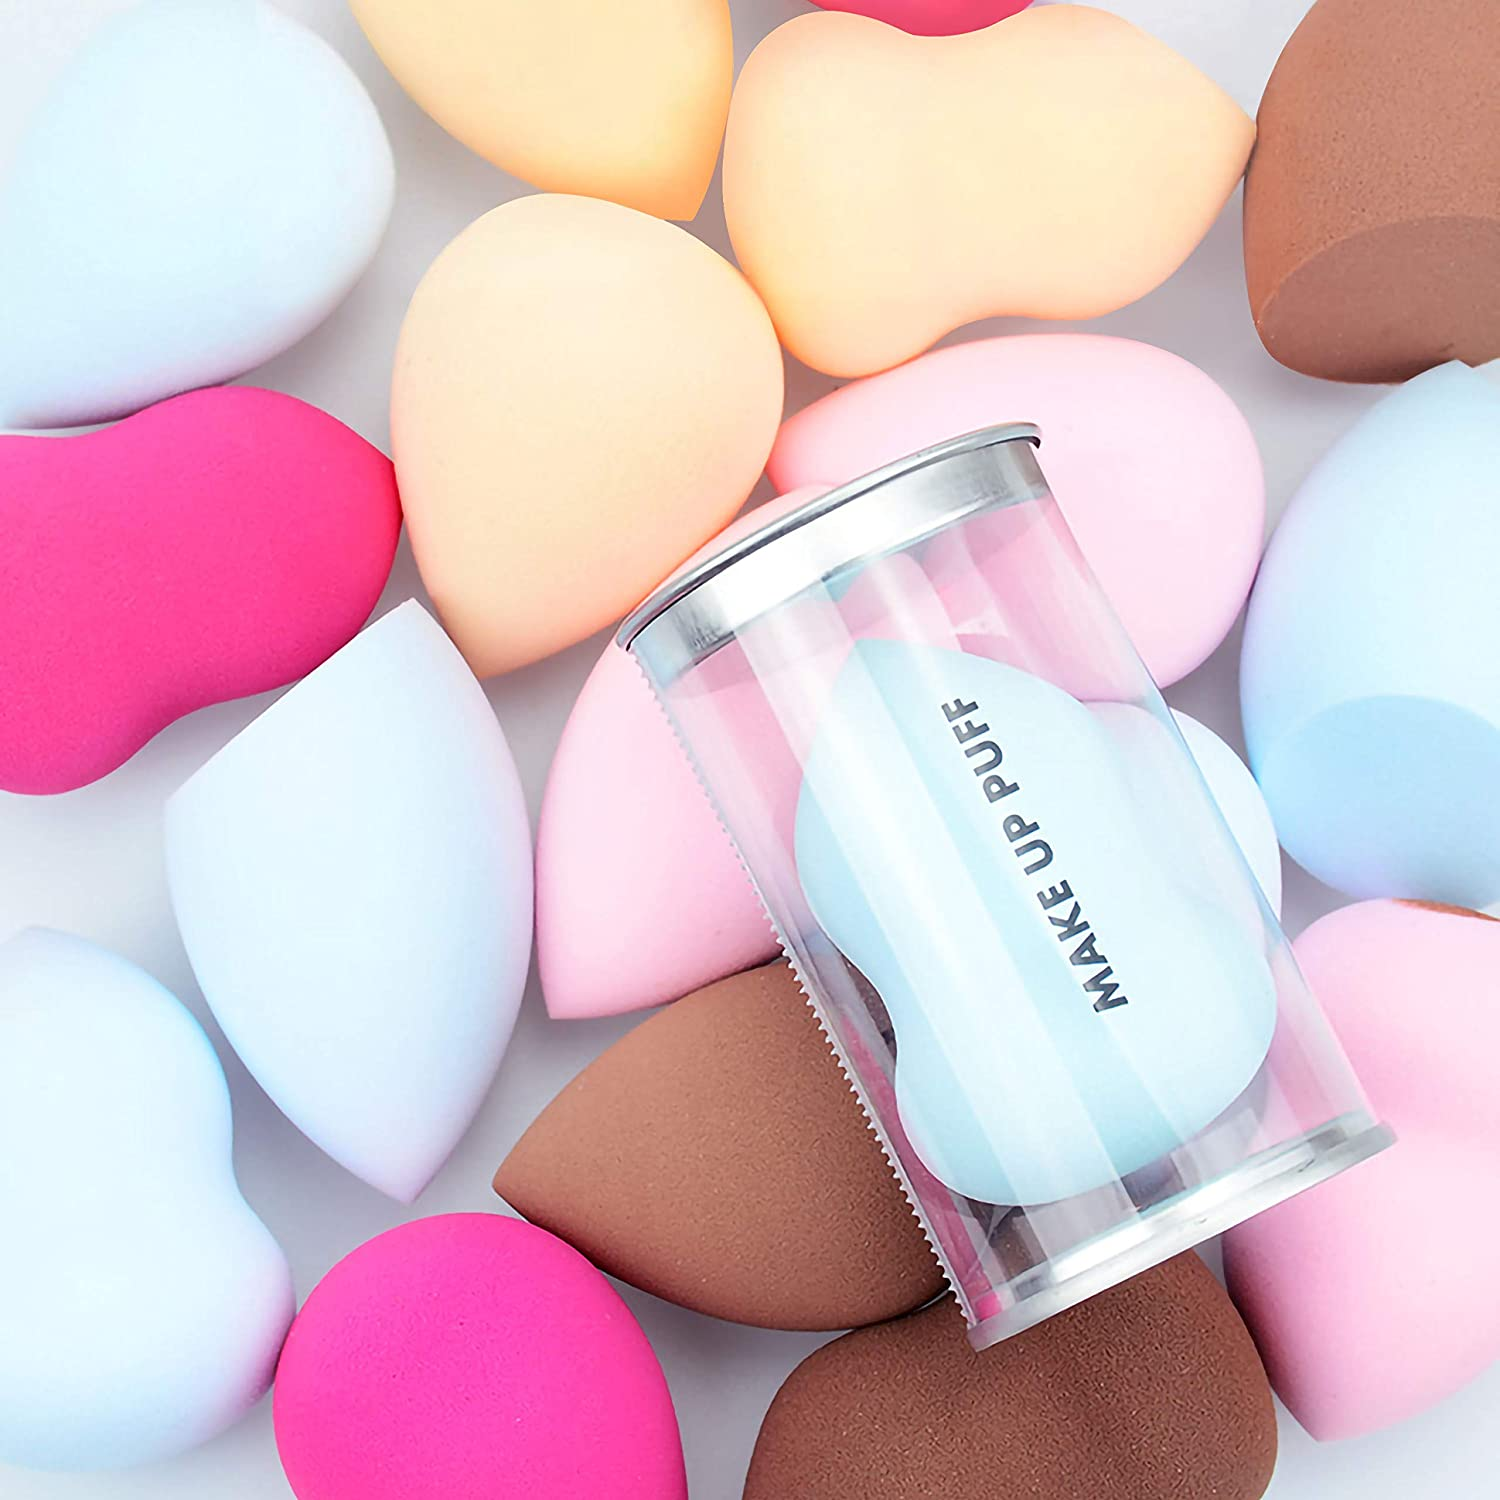 Ryalan 3 Pcs Makeup Sponge with Beauty Blender Holder Set Foundation Blending Sponge Latex-free Makeup Sponges for Concealer, Liquid, Cream and Powder, Sensitive and All Skin Types (3+1 Pcs, Blue)